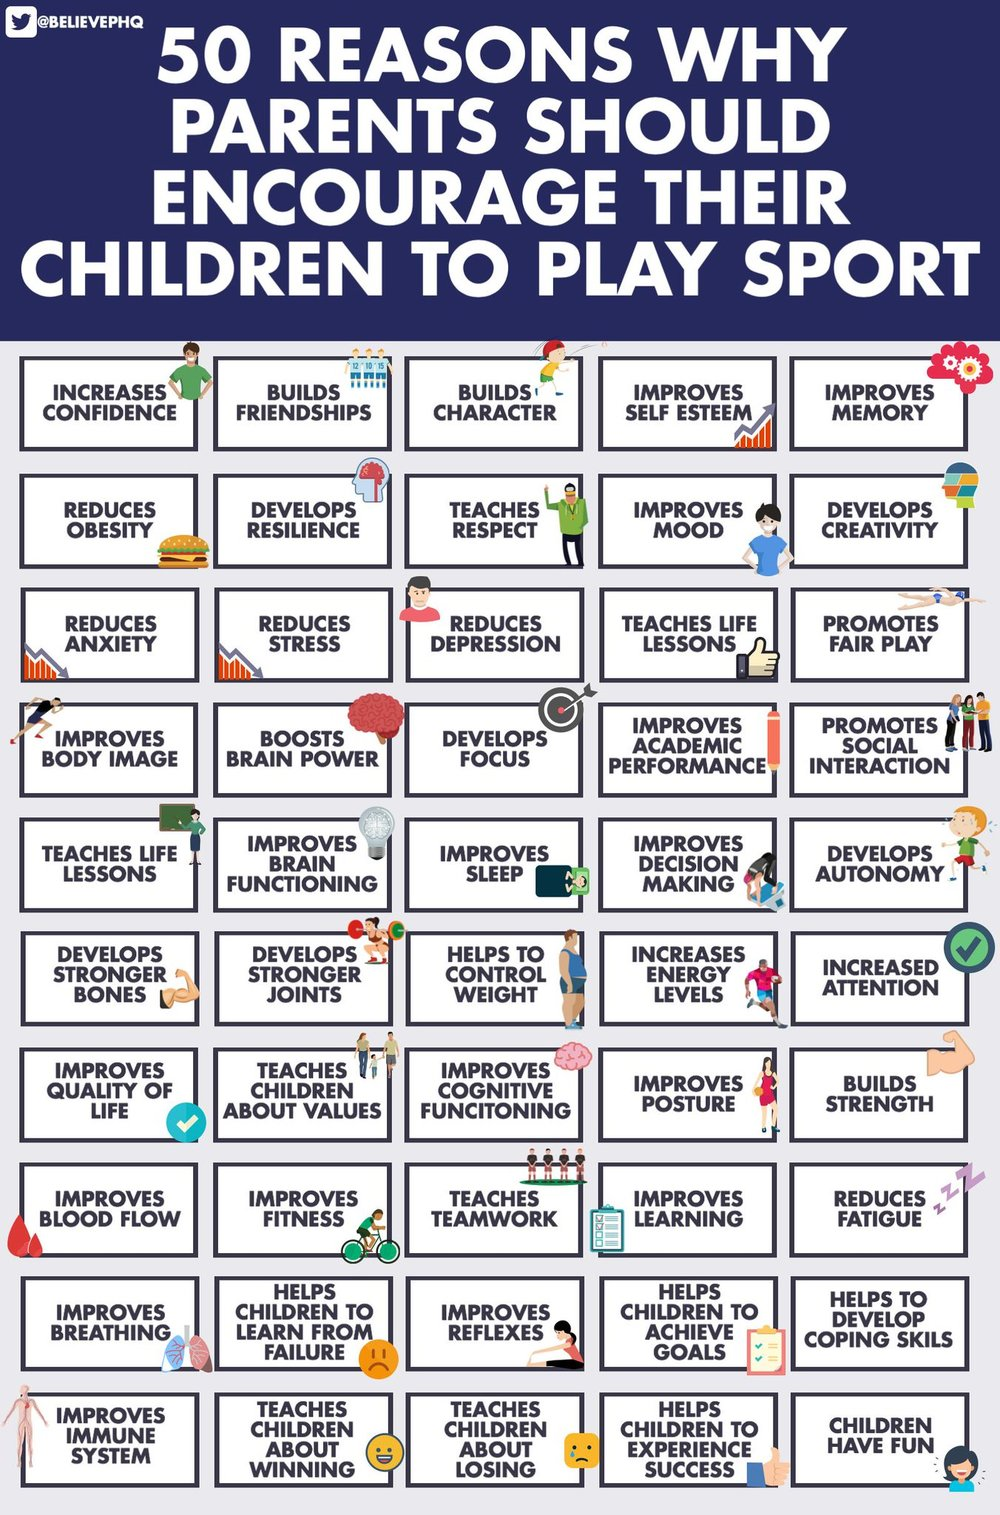 Parents should encourage to play sports.jpg